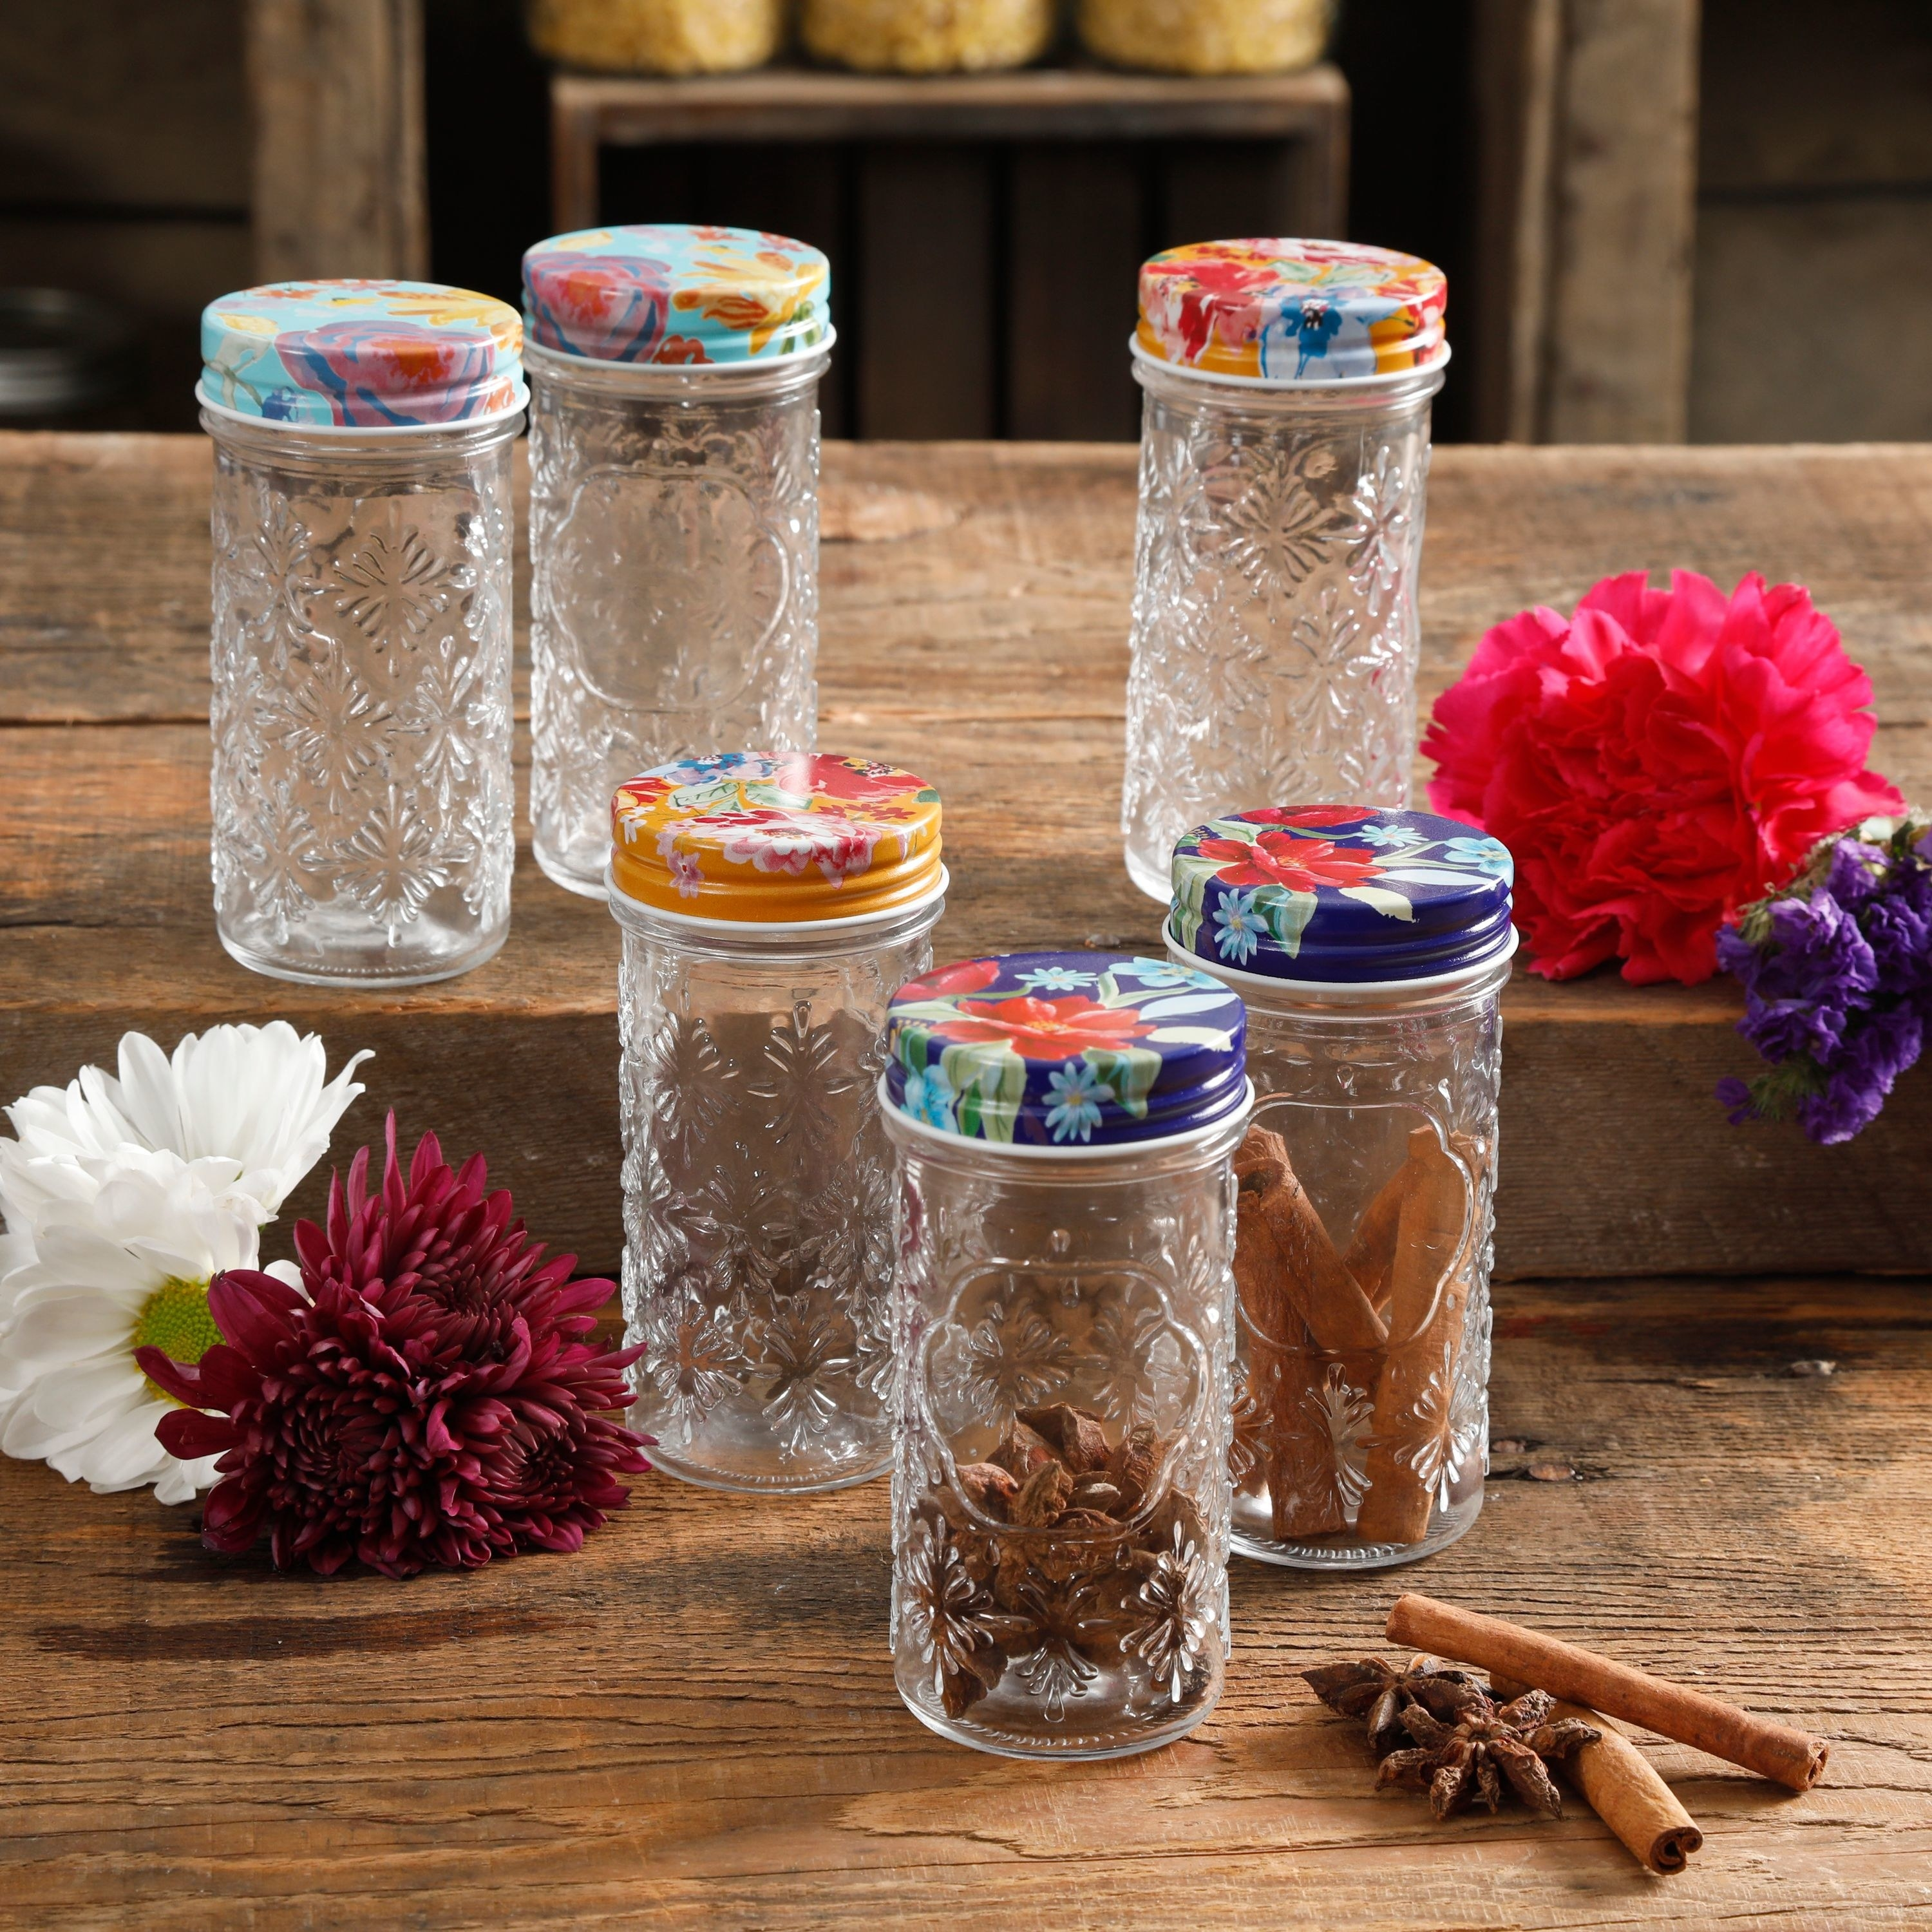 the spice jars, which have embossed glass bodies and colorful tin screw-on tops